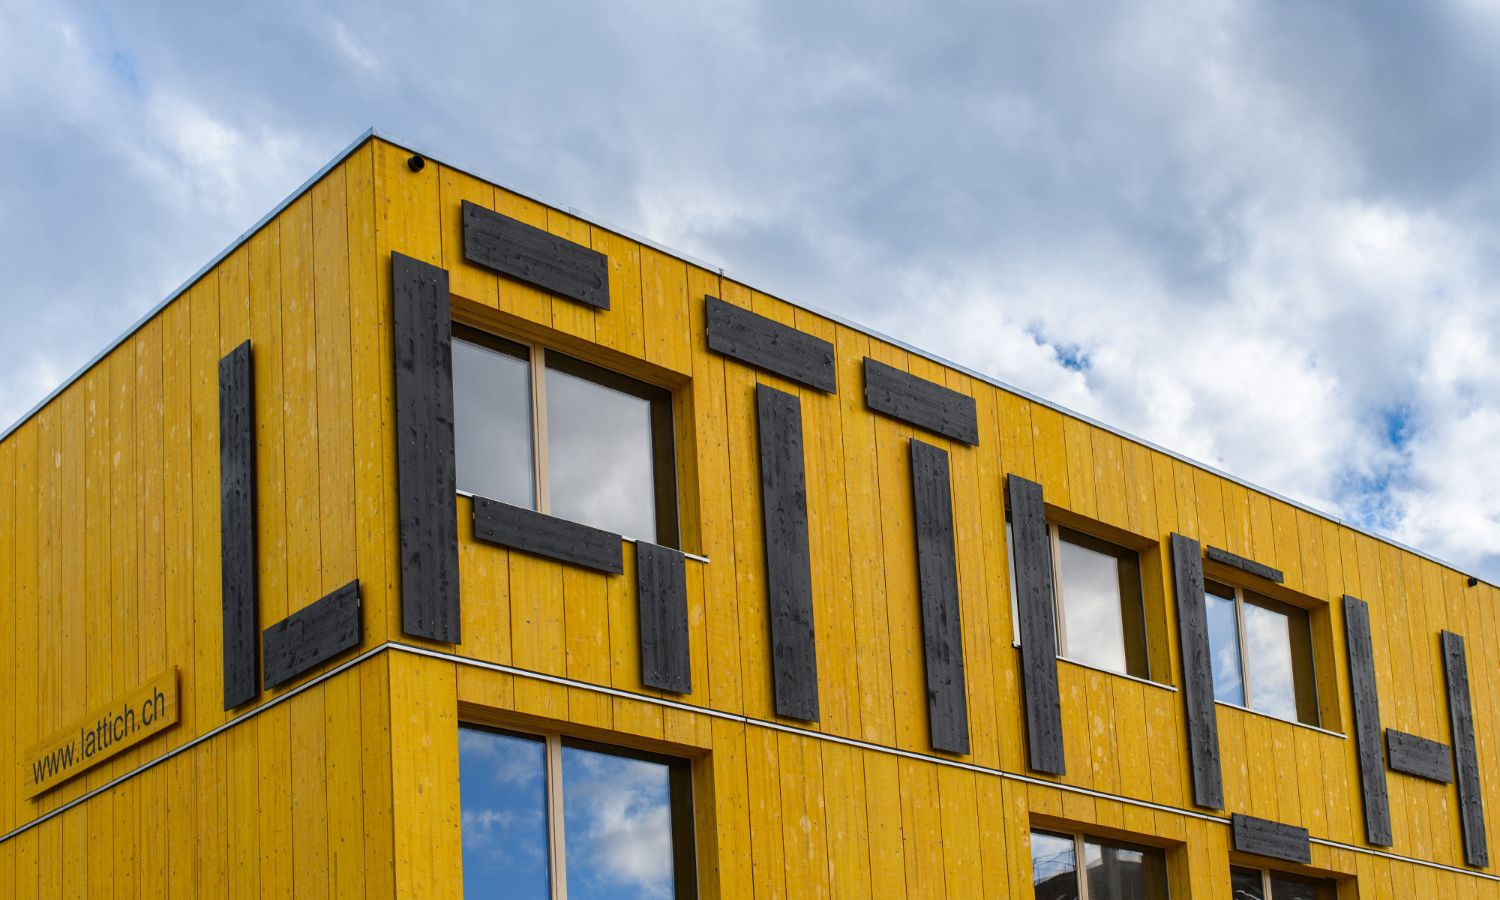 The yellow building of the Lattich Areal in St.Gallen with the striking black lettering